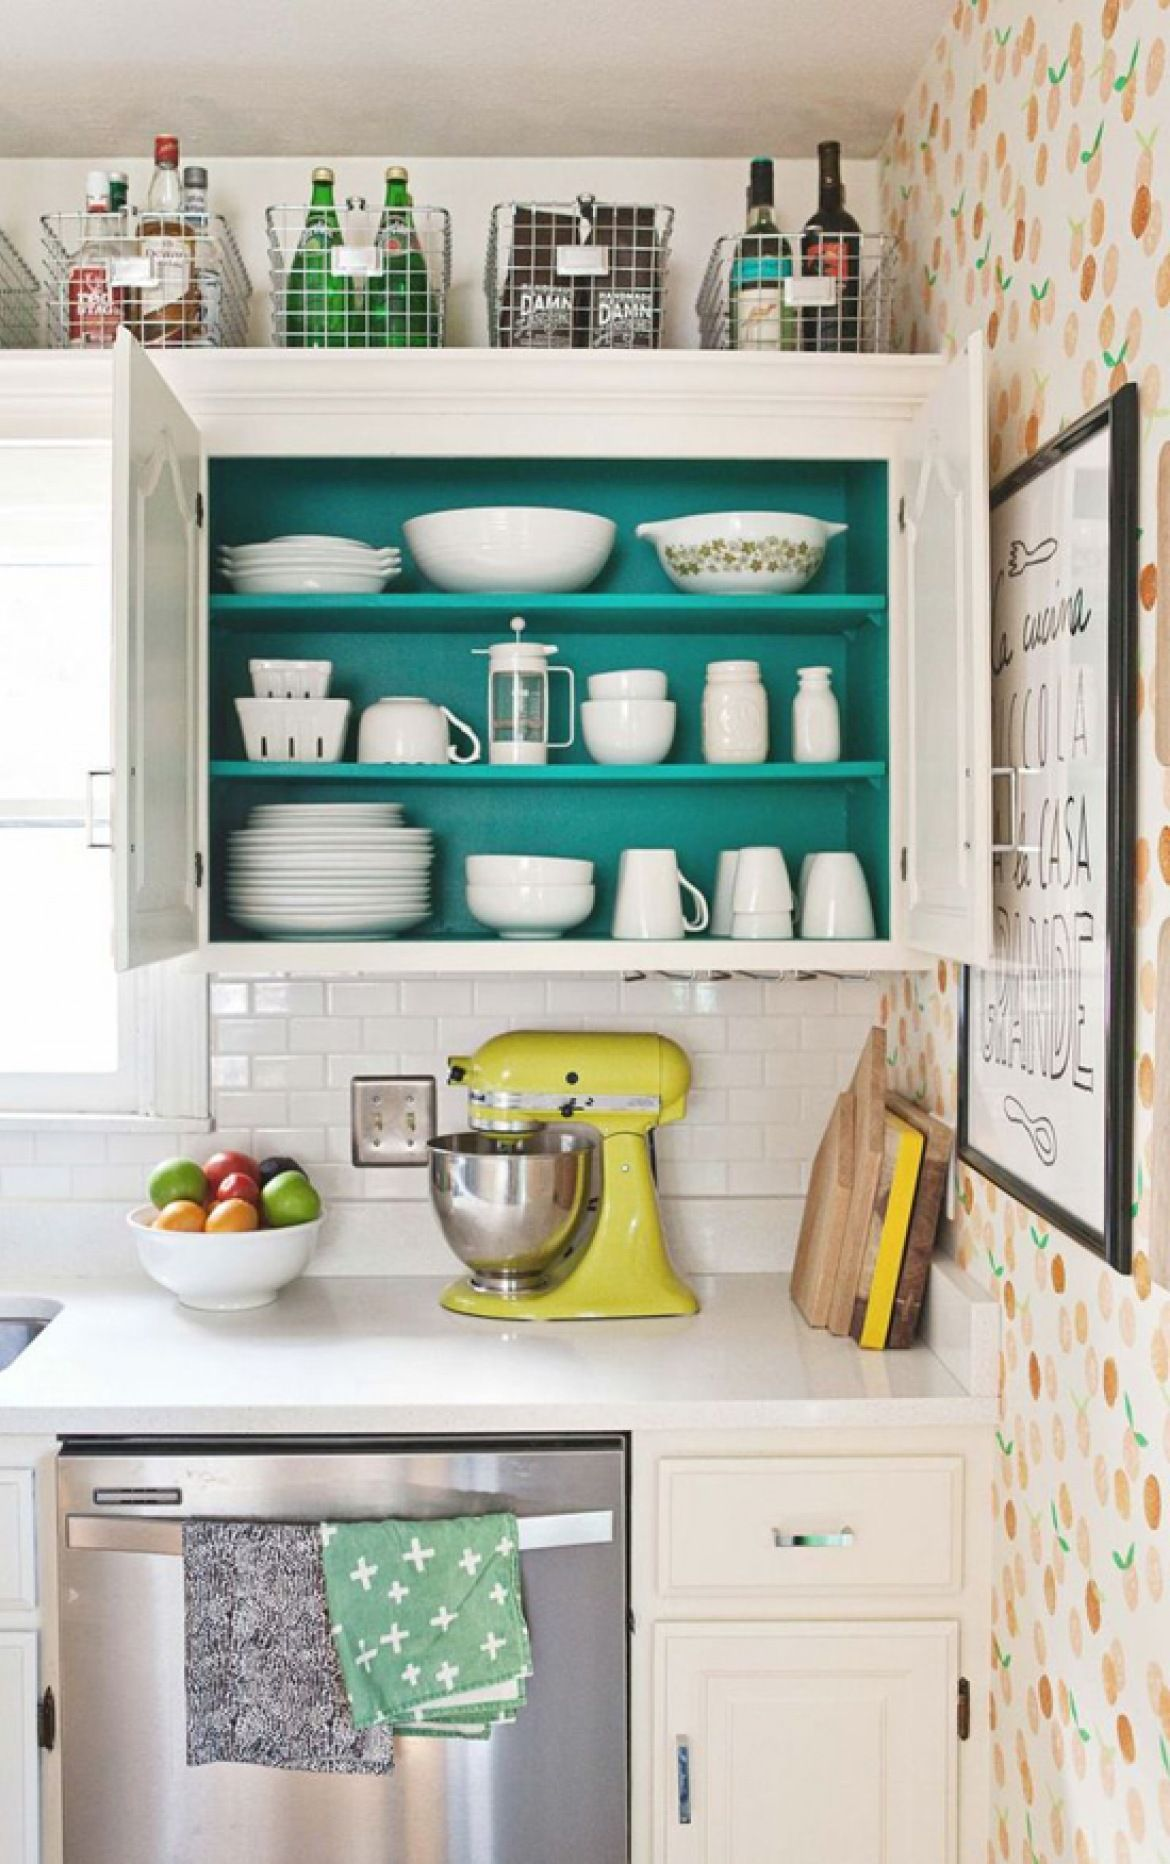 Storage Tricks for a Tiny Kitchen - Small Kitchen Organization